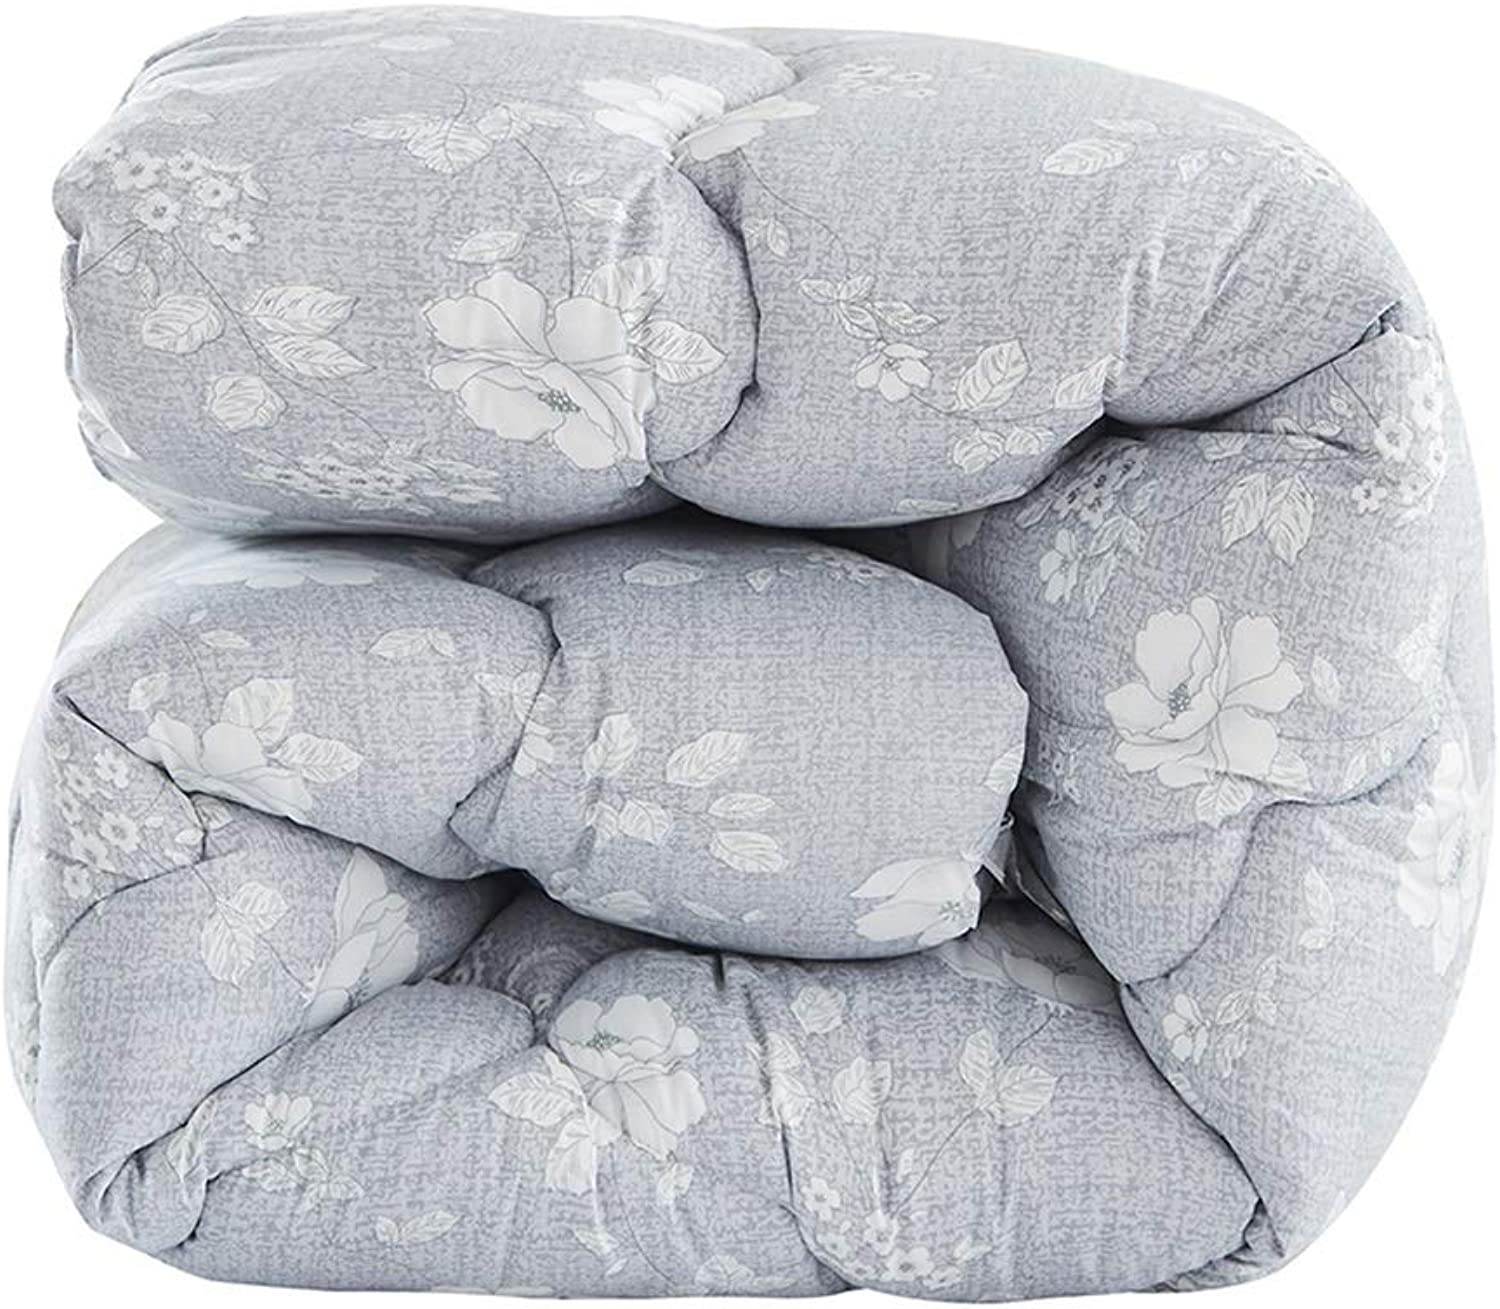 Quilt Lightweight Comforter All Seasons Quilt with Corner Loops, Anti-Allergenic and Dust Mite Resistant Warm and Soft Quilt (Size   200cmx230cm3kg)